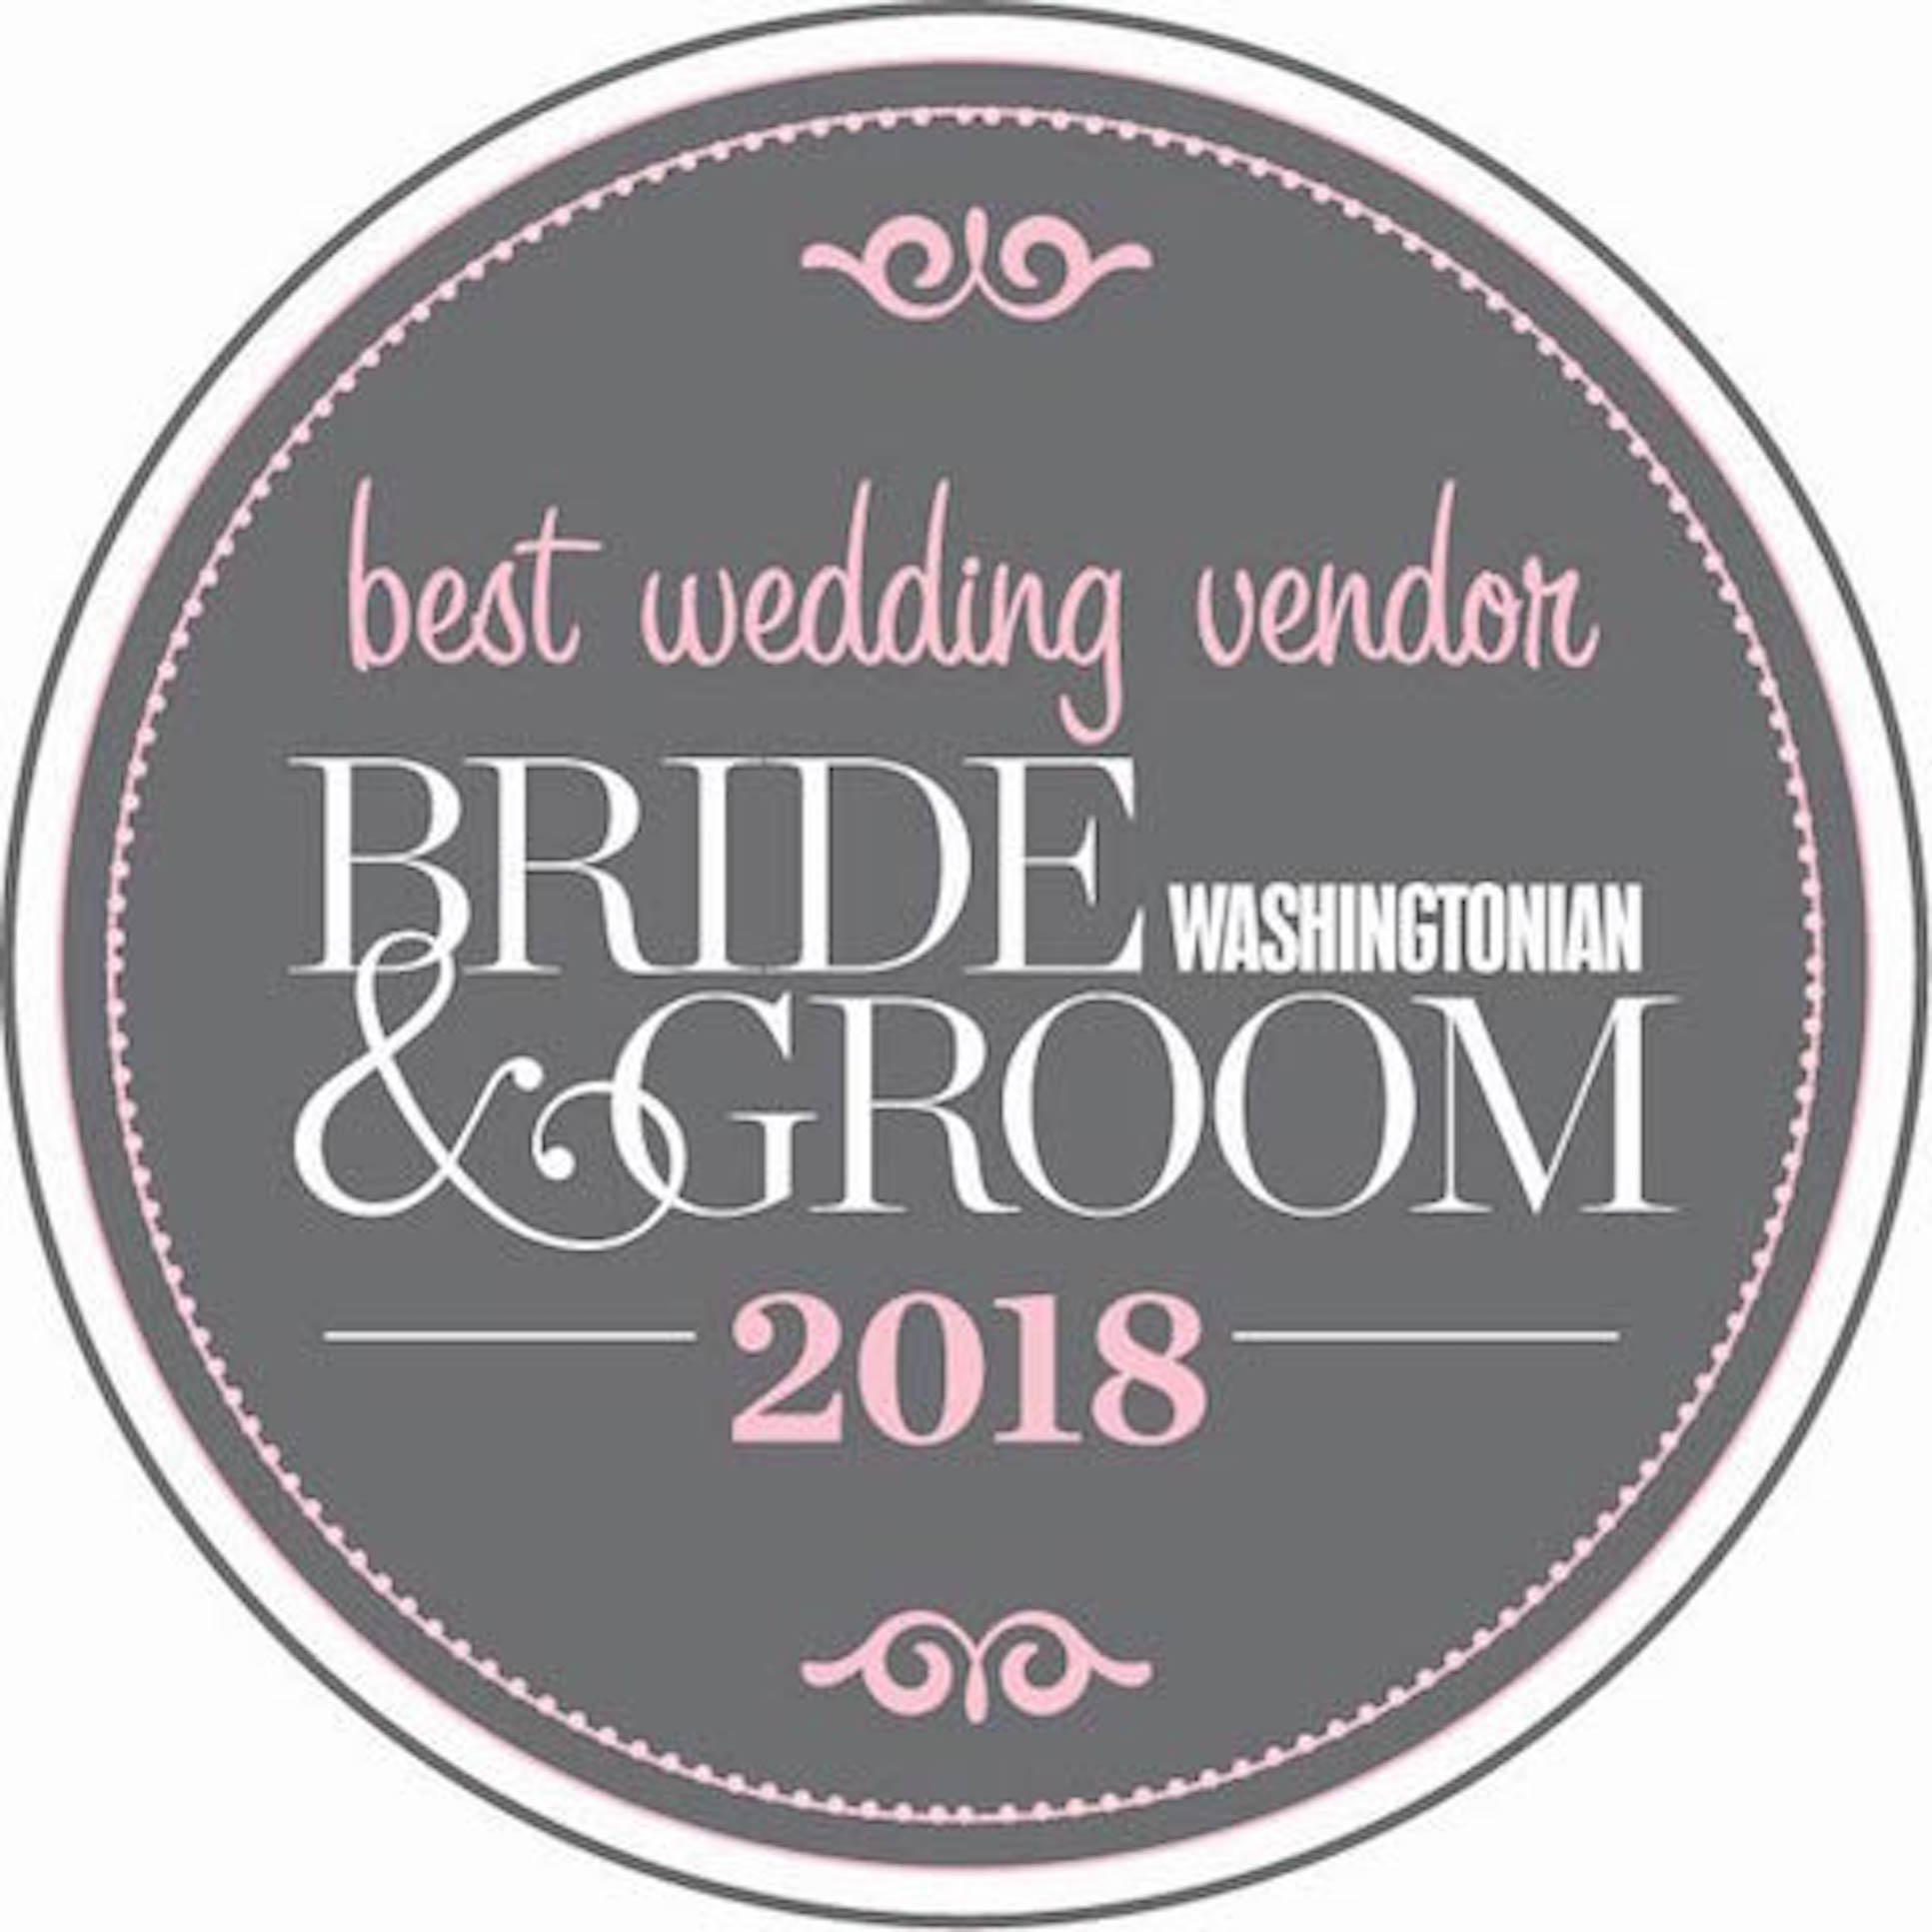 bestweddingvendor copy2018.jpg